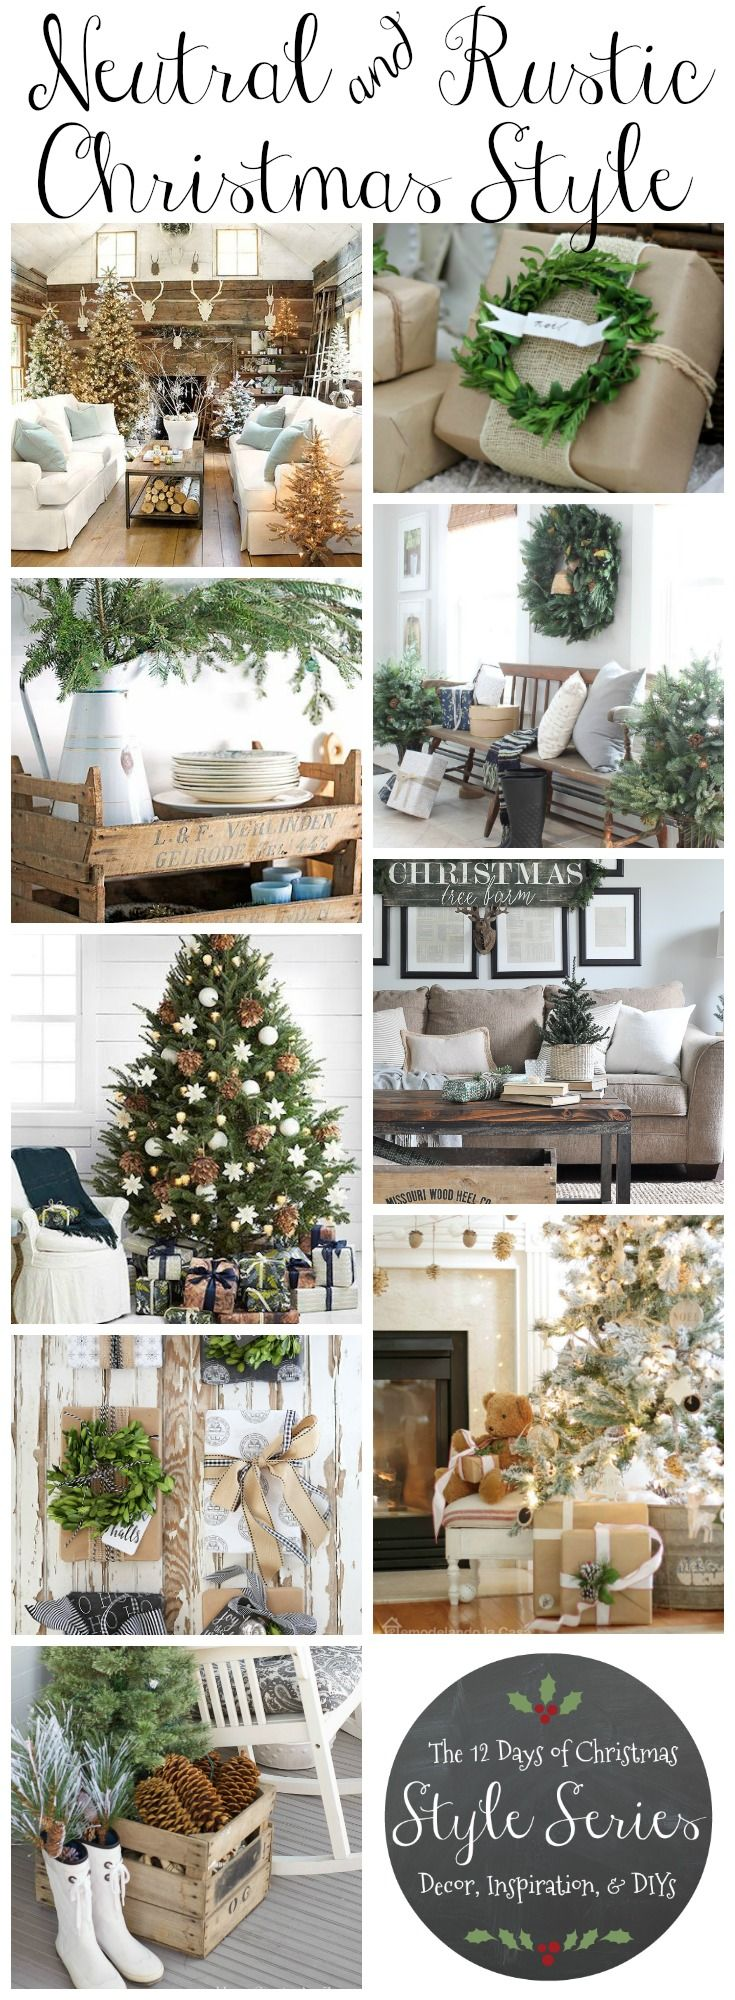 Rustic christmas decorations diy - Rustic Natural Neutral Christmas Style Series